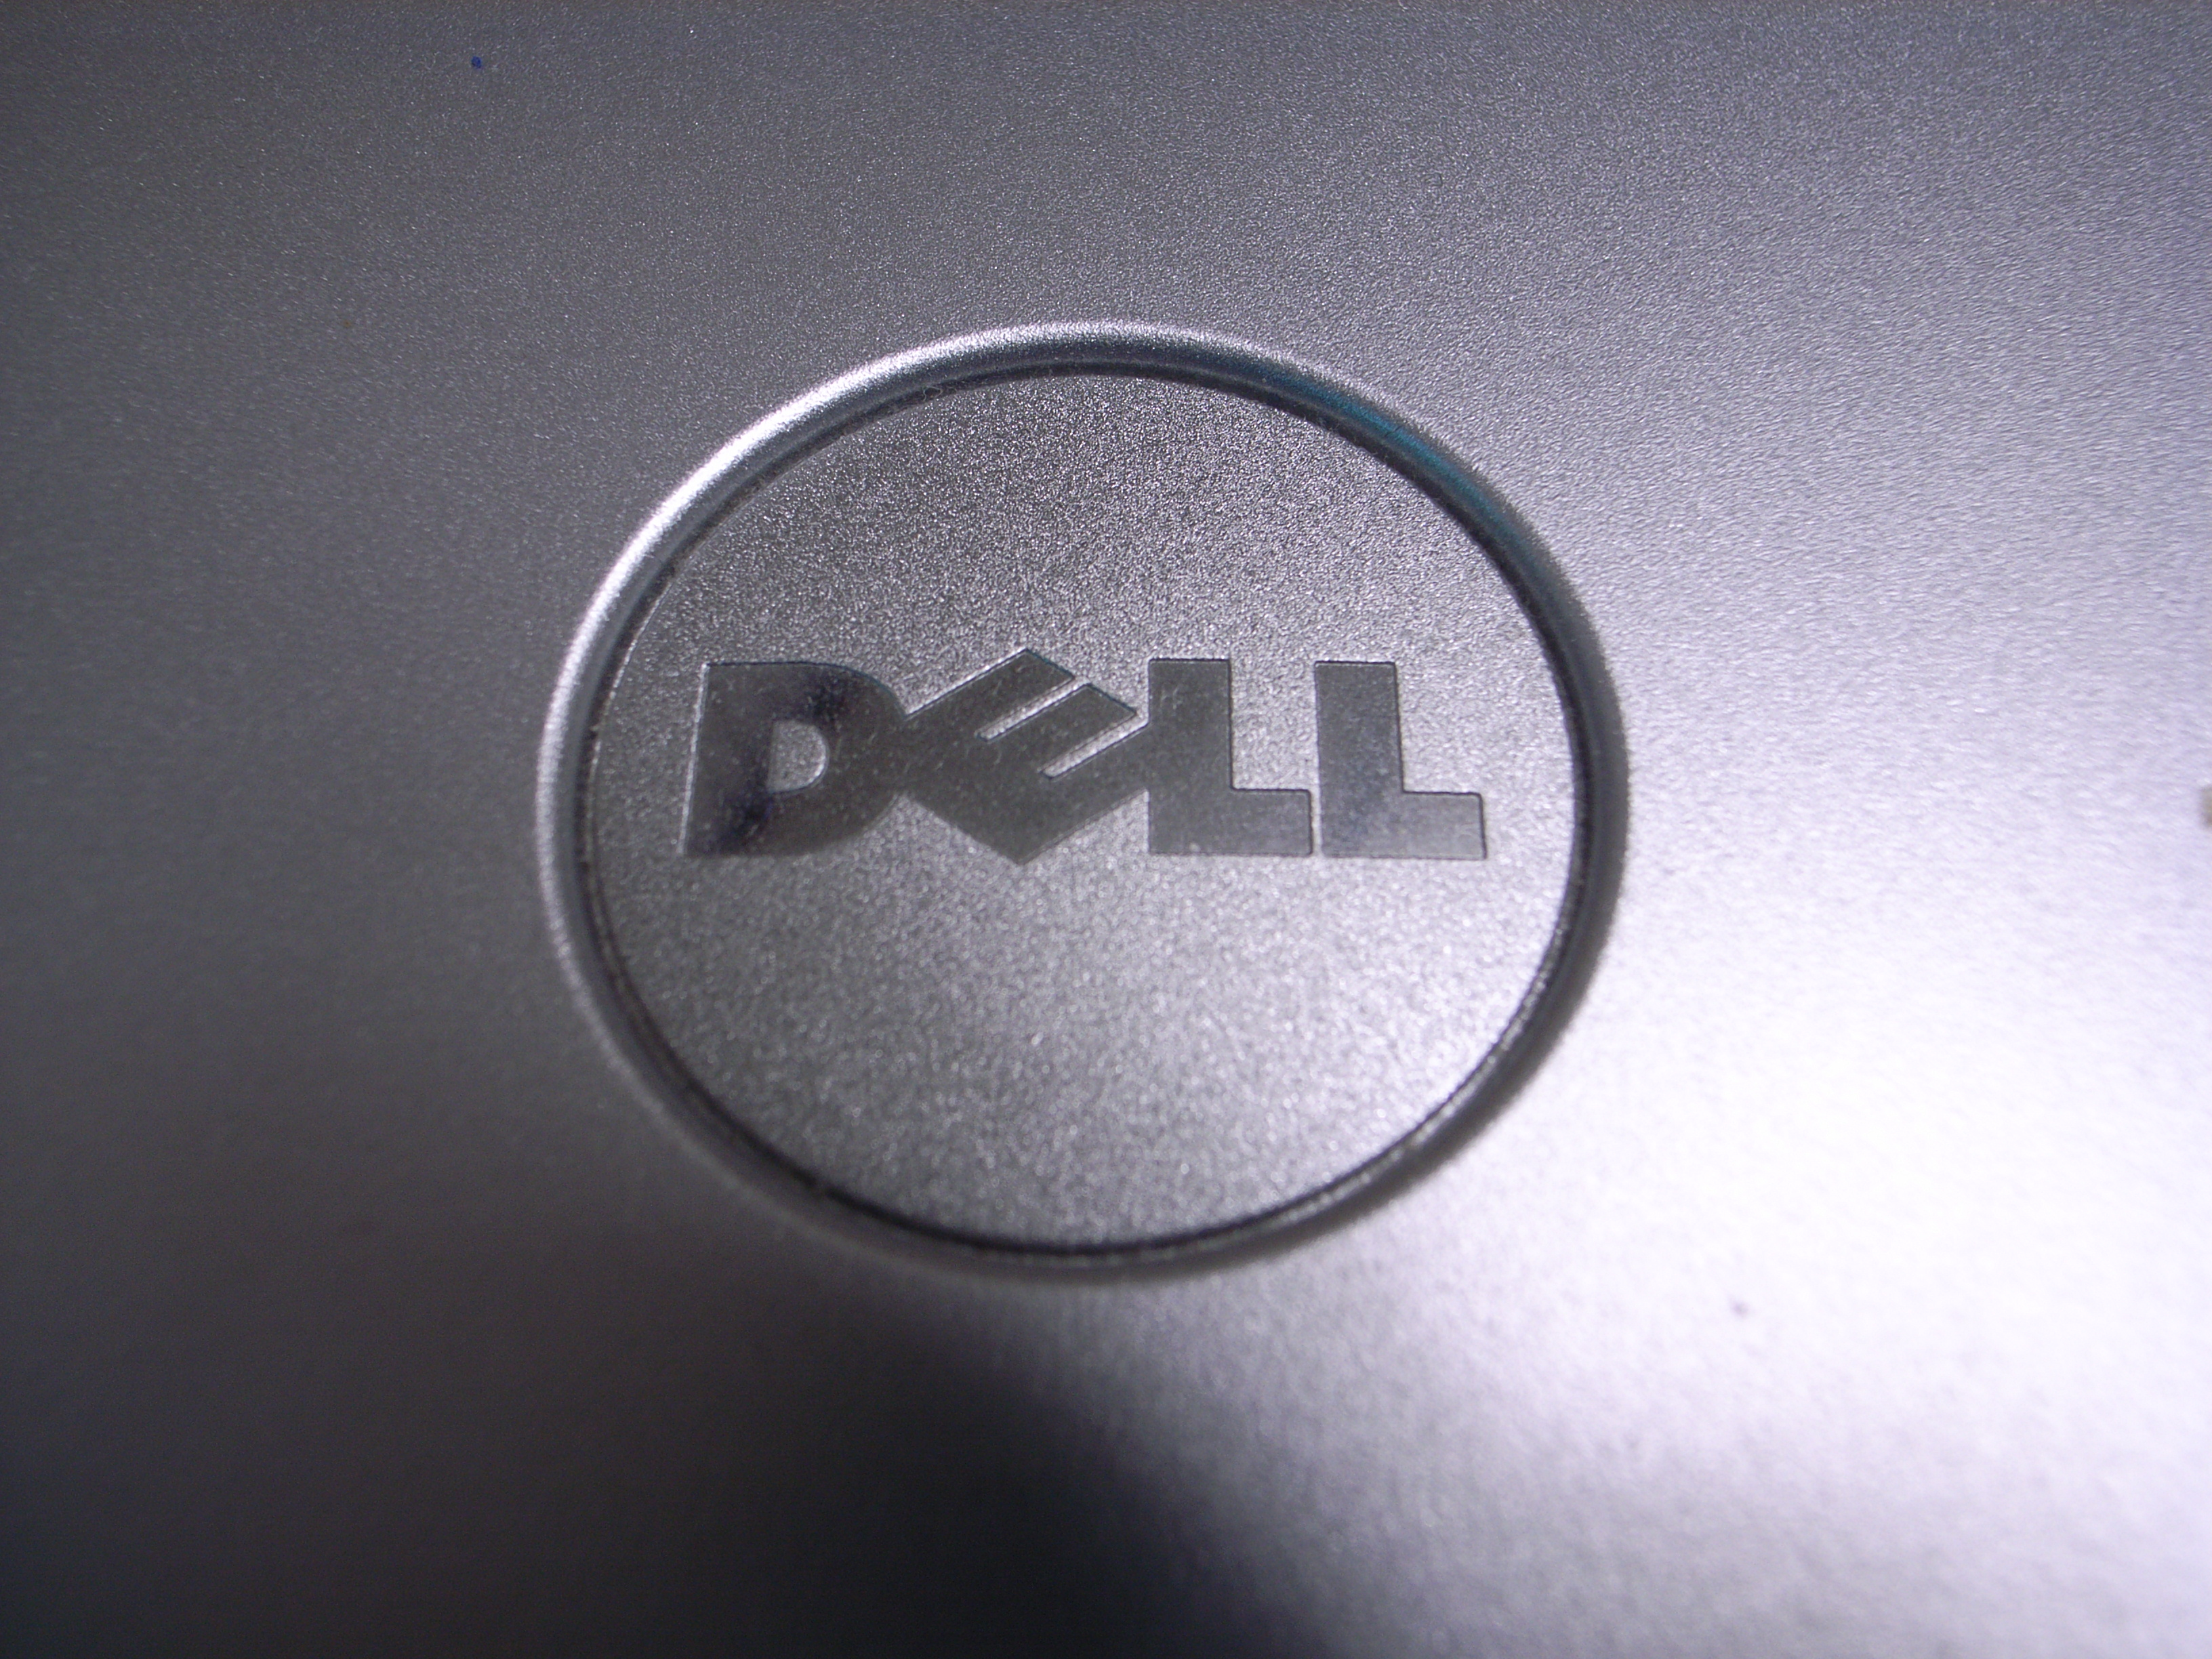 Dell Considering Ipo 4 Years After Going Private Venturebeat